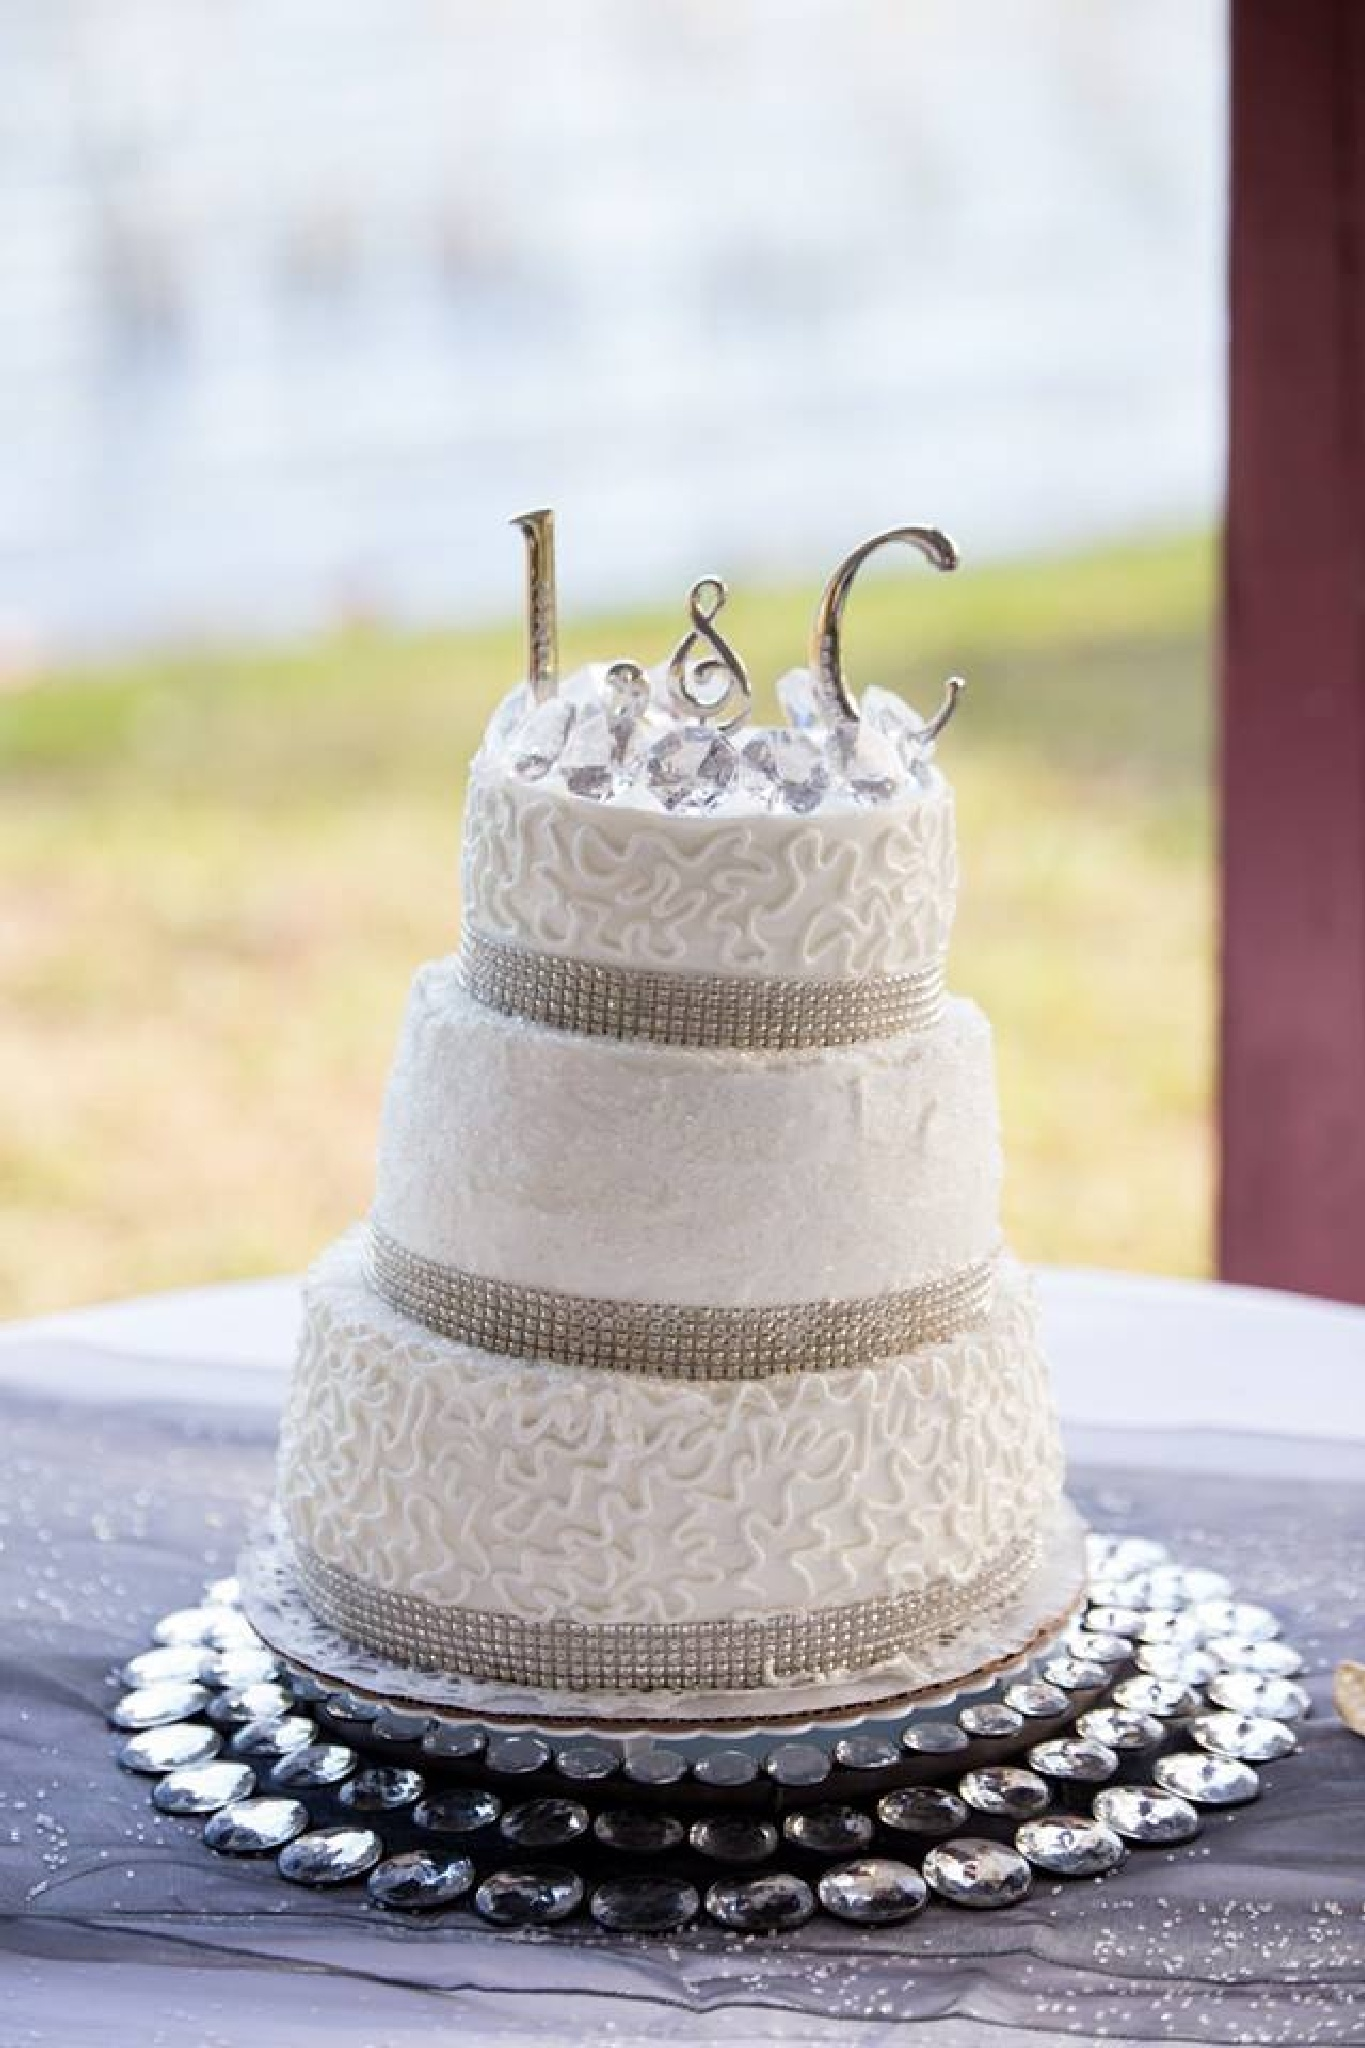 Lisa and Carl's wedding Cake by Susie Price Williams